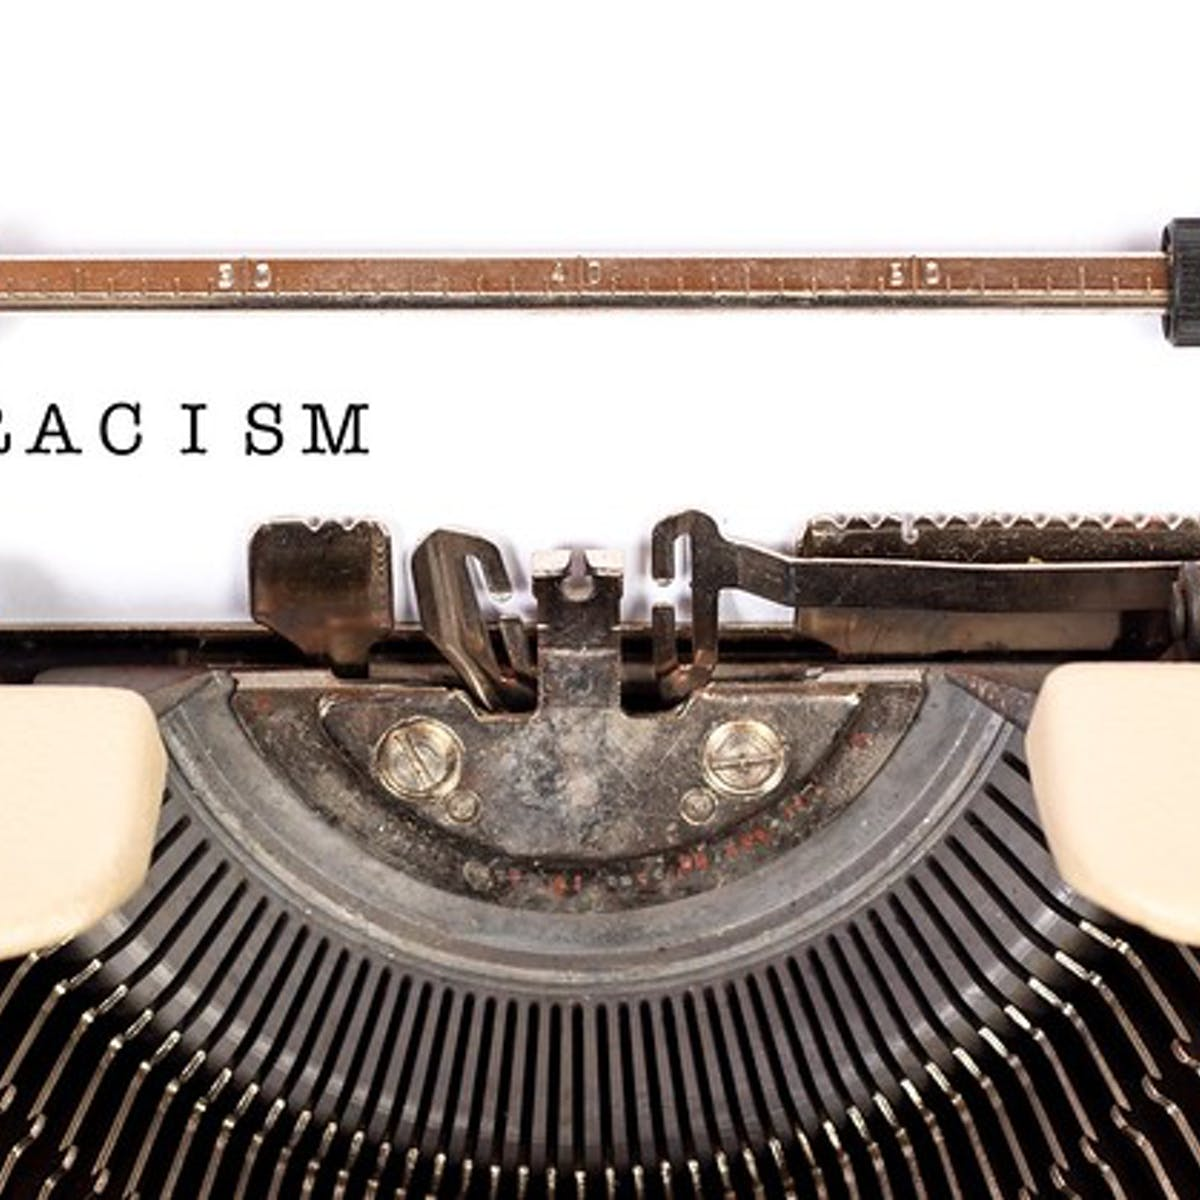 Let's talk more about racism in Indonesia